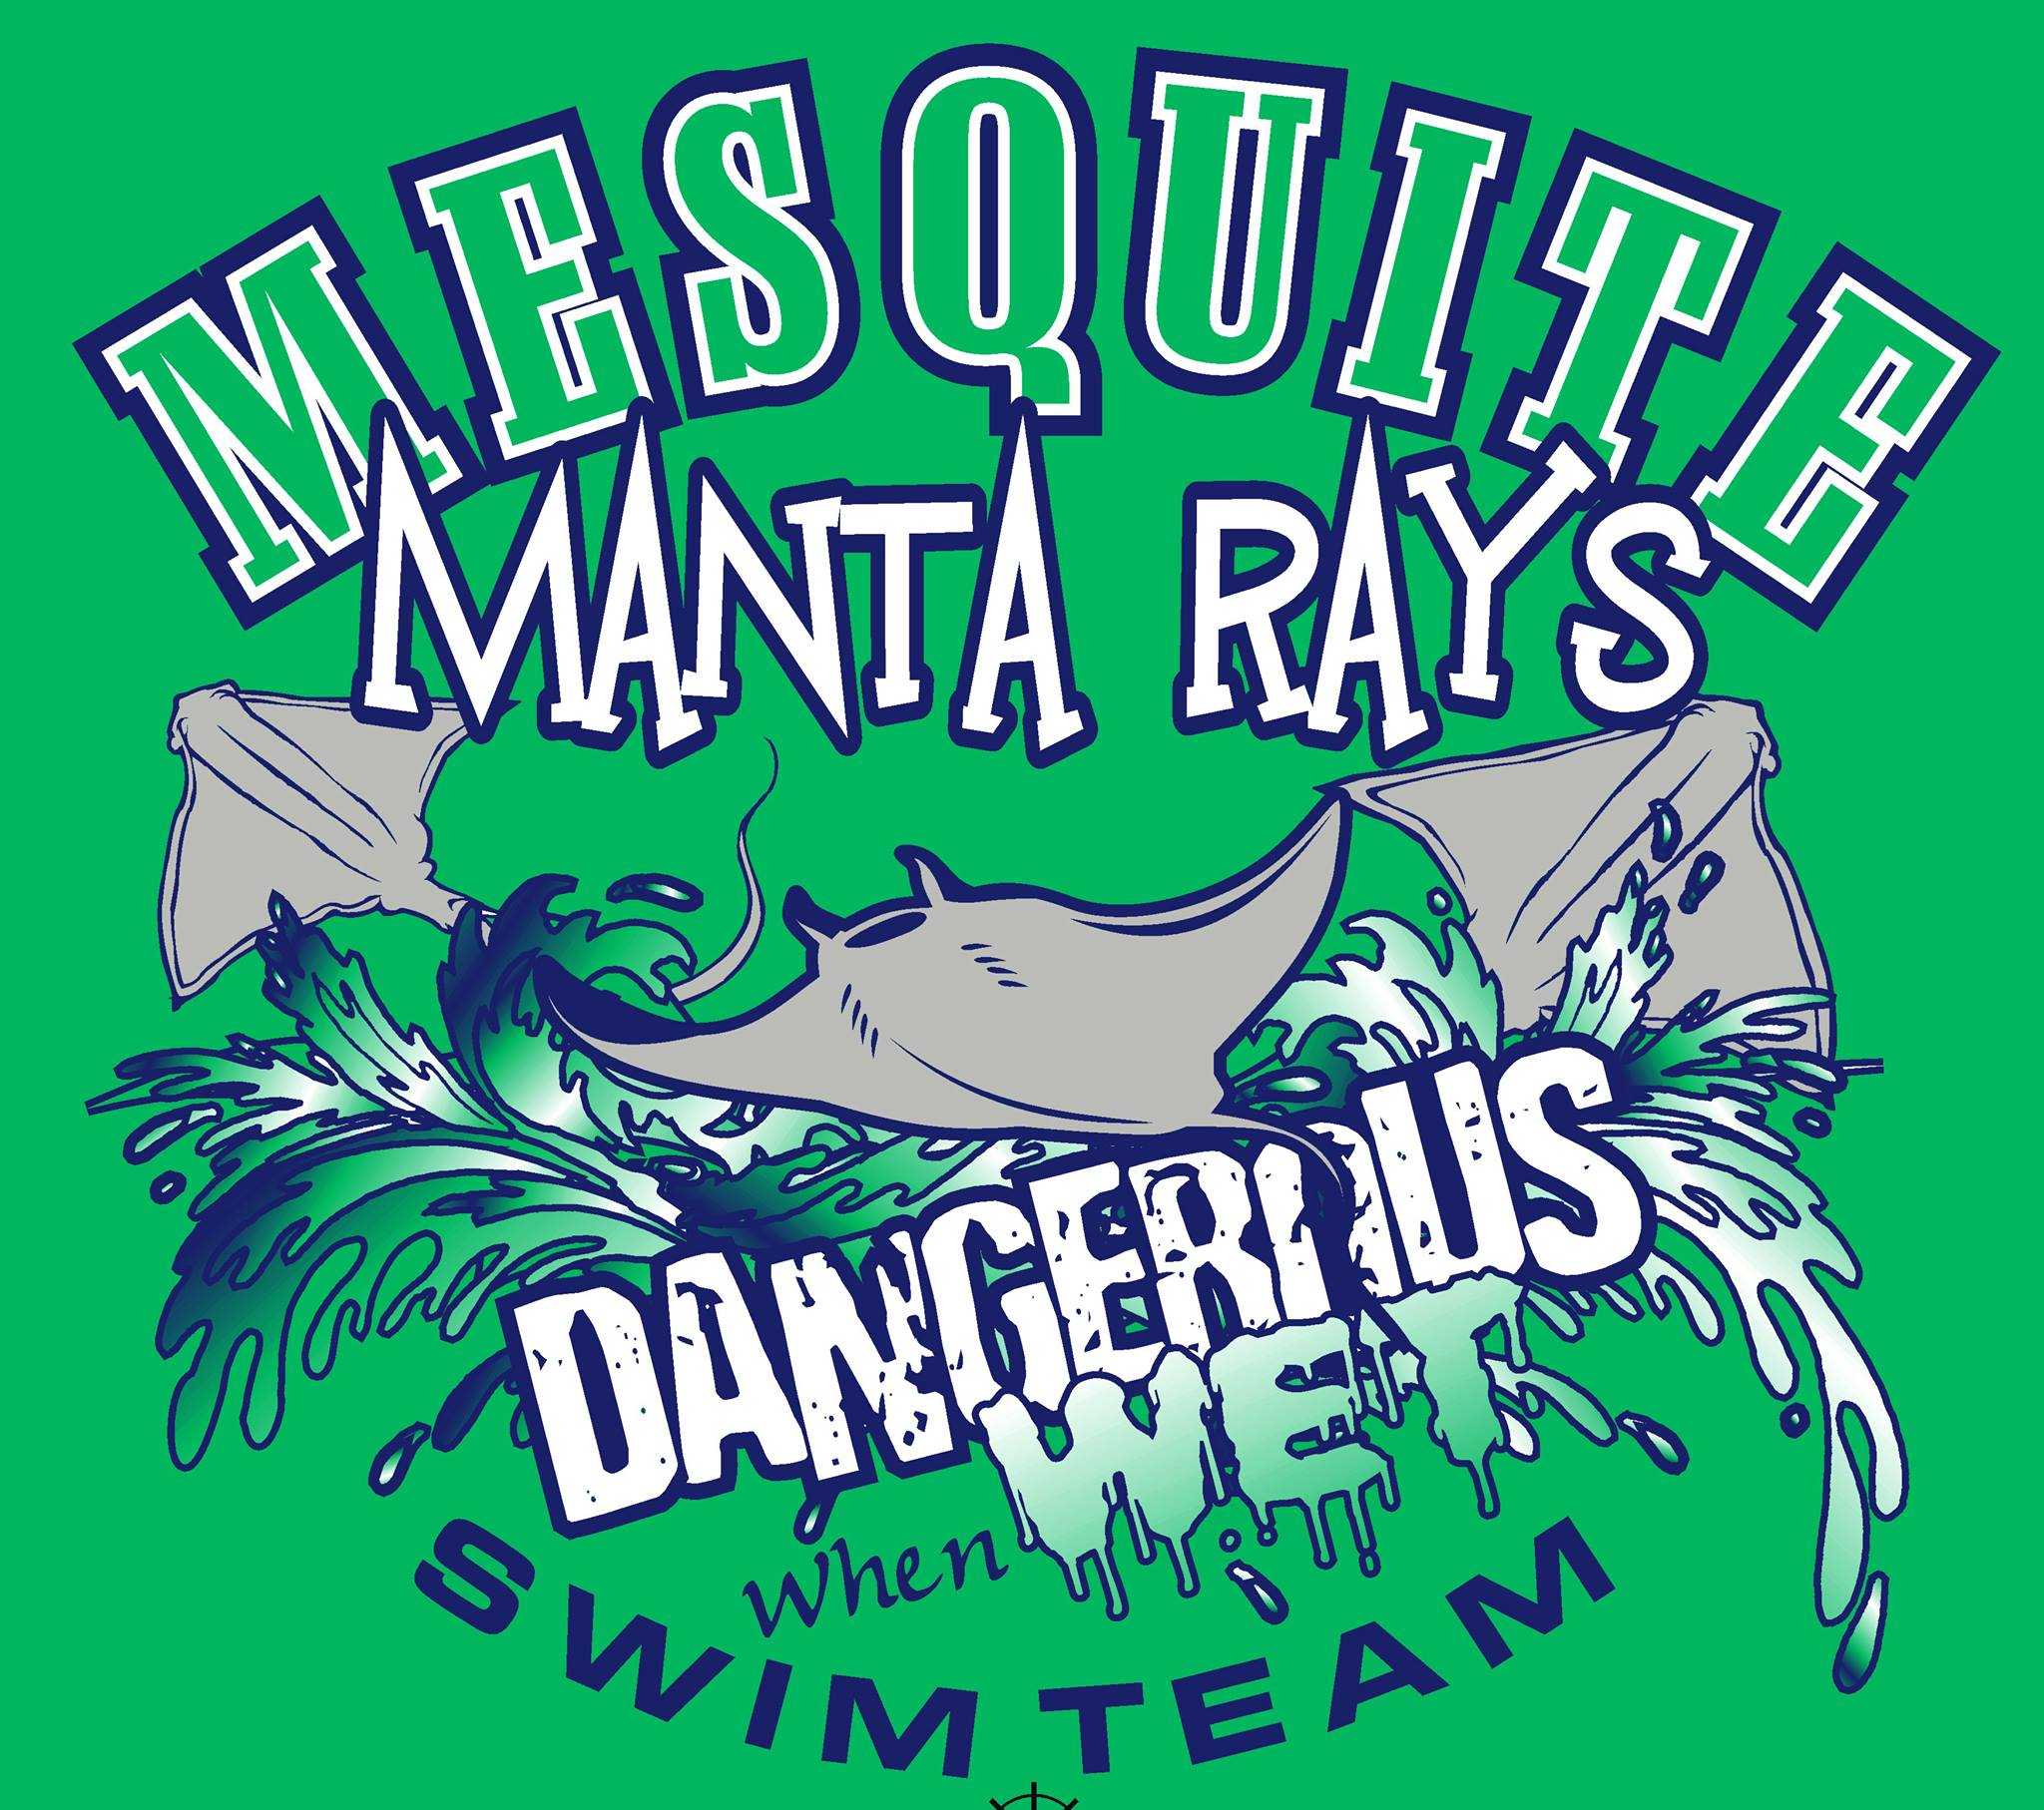 Manta Rays Summer Swim Meet Schedule